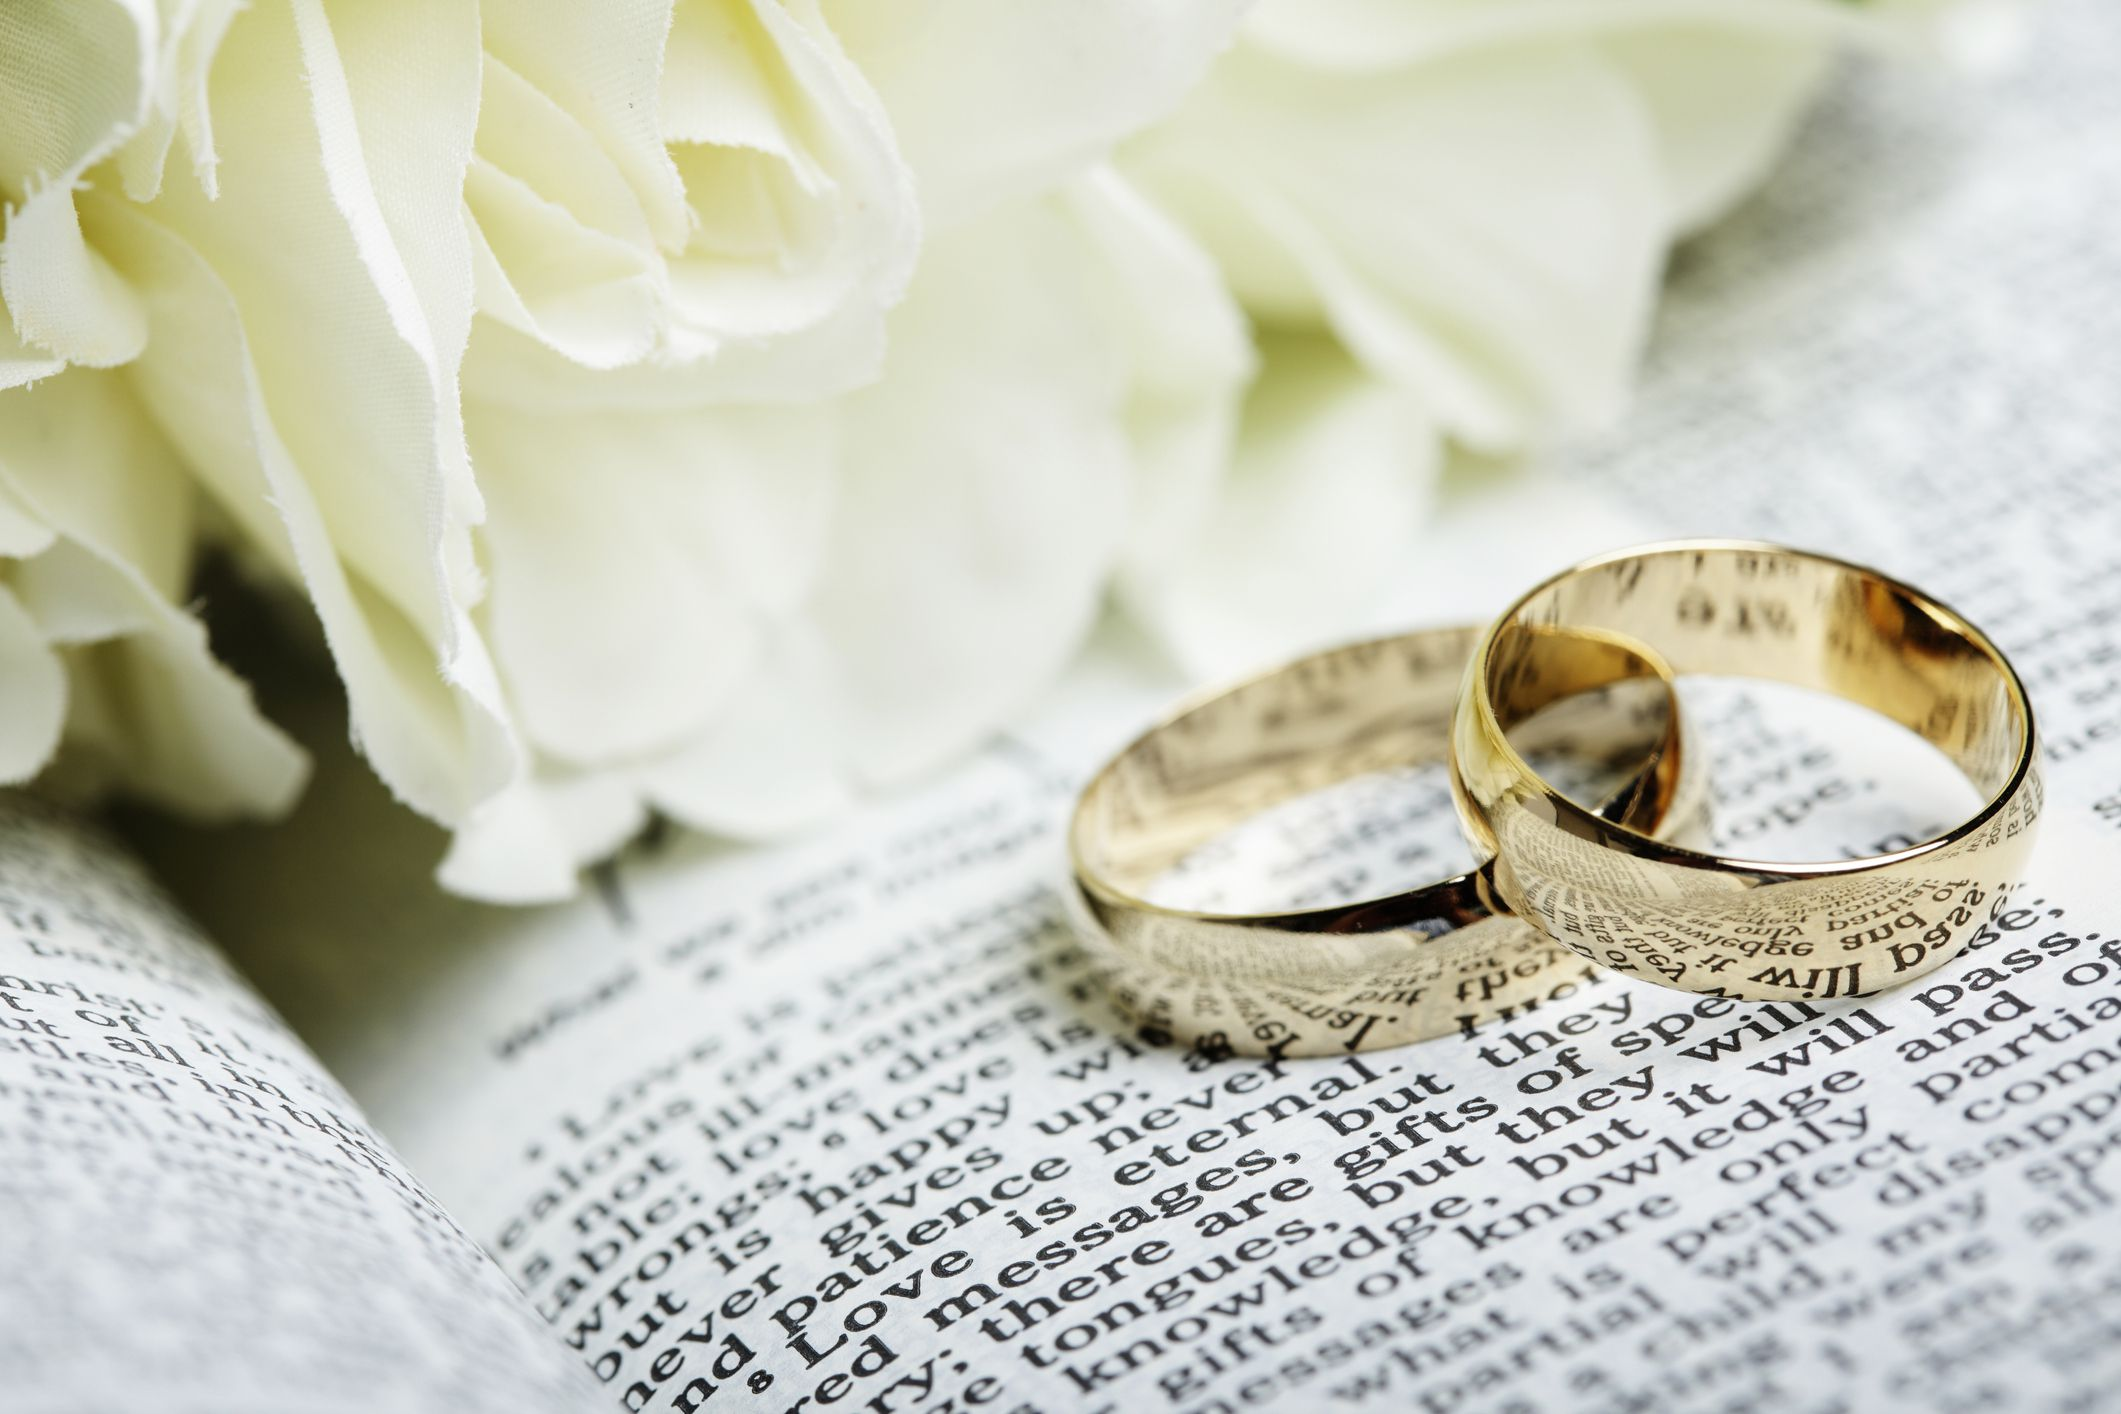 What Does The Bible Say About Marriage